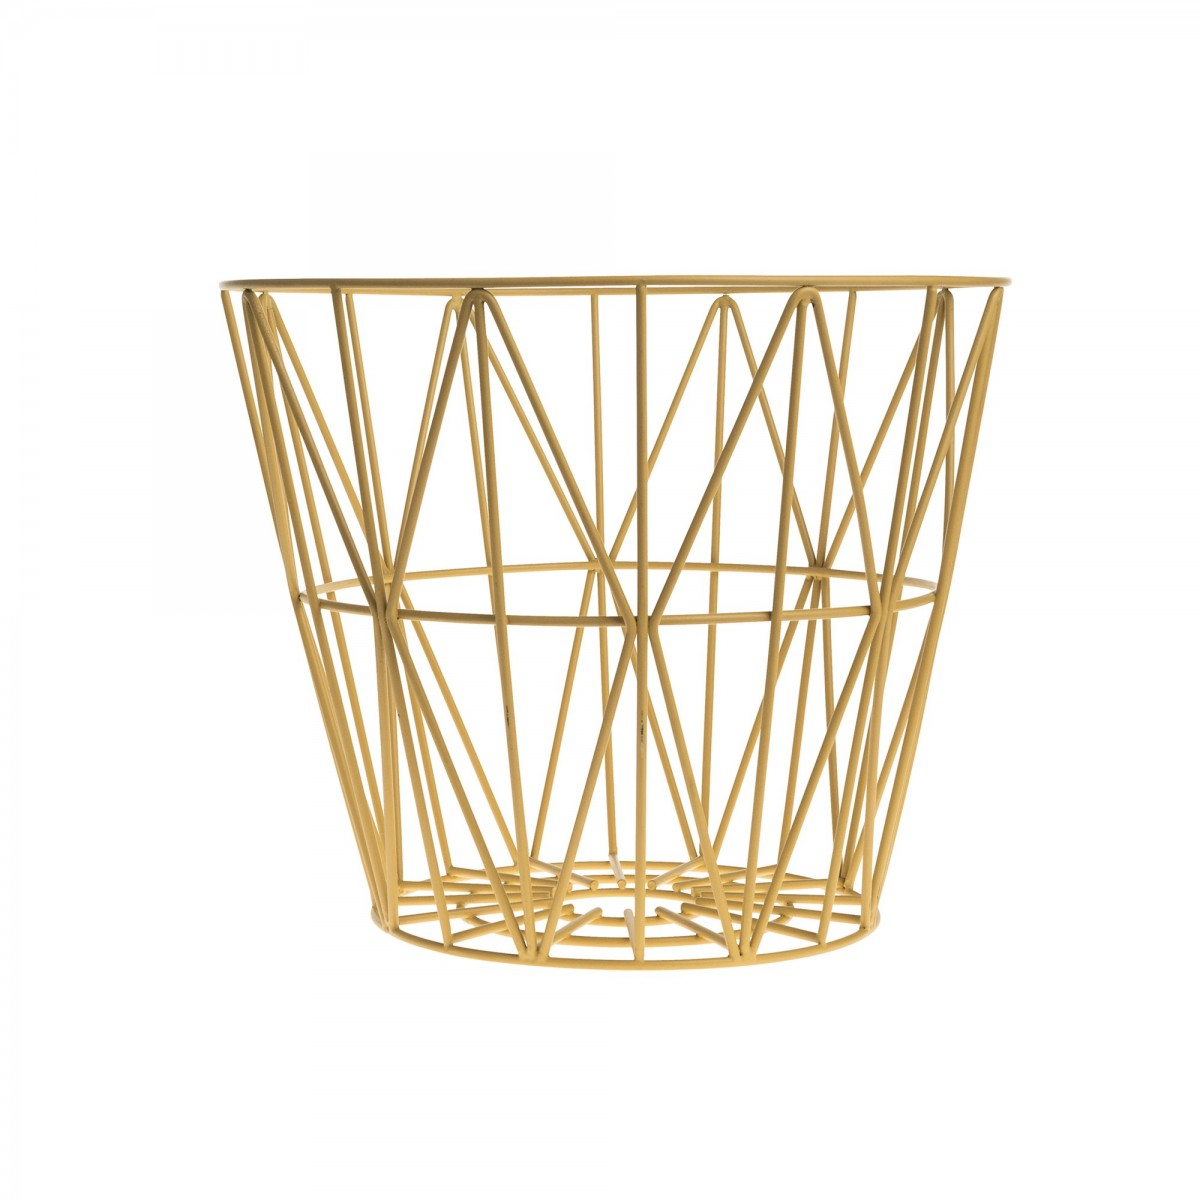 wire m basket in colored metal wire ferm living. Black Bedroom Furniture Sets. Home Design Ideas